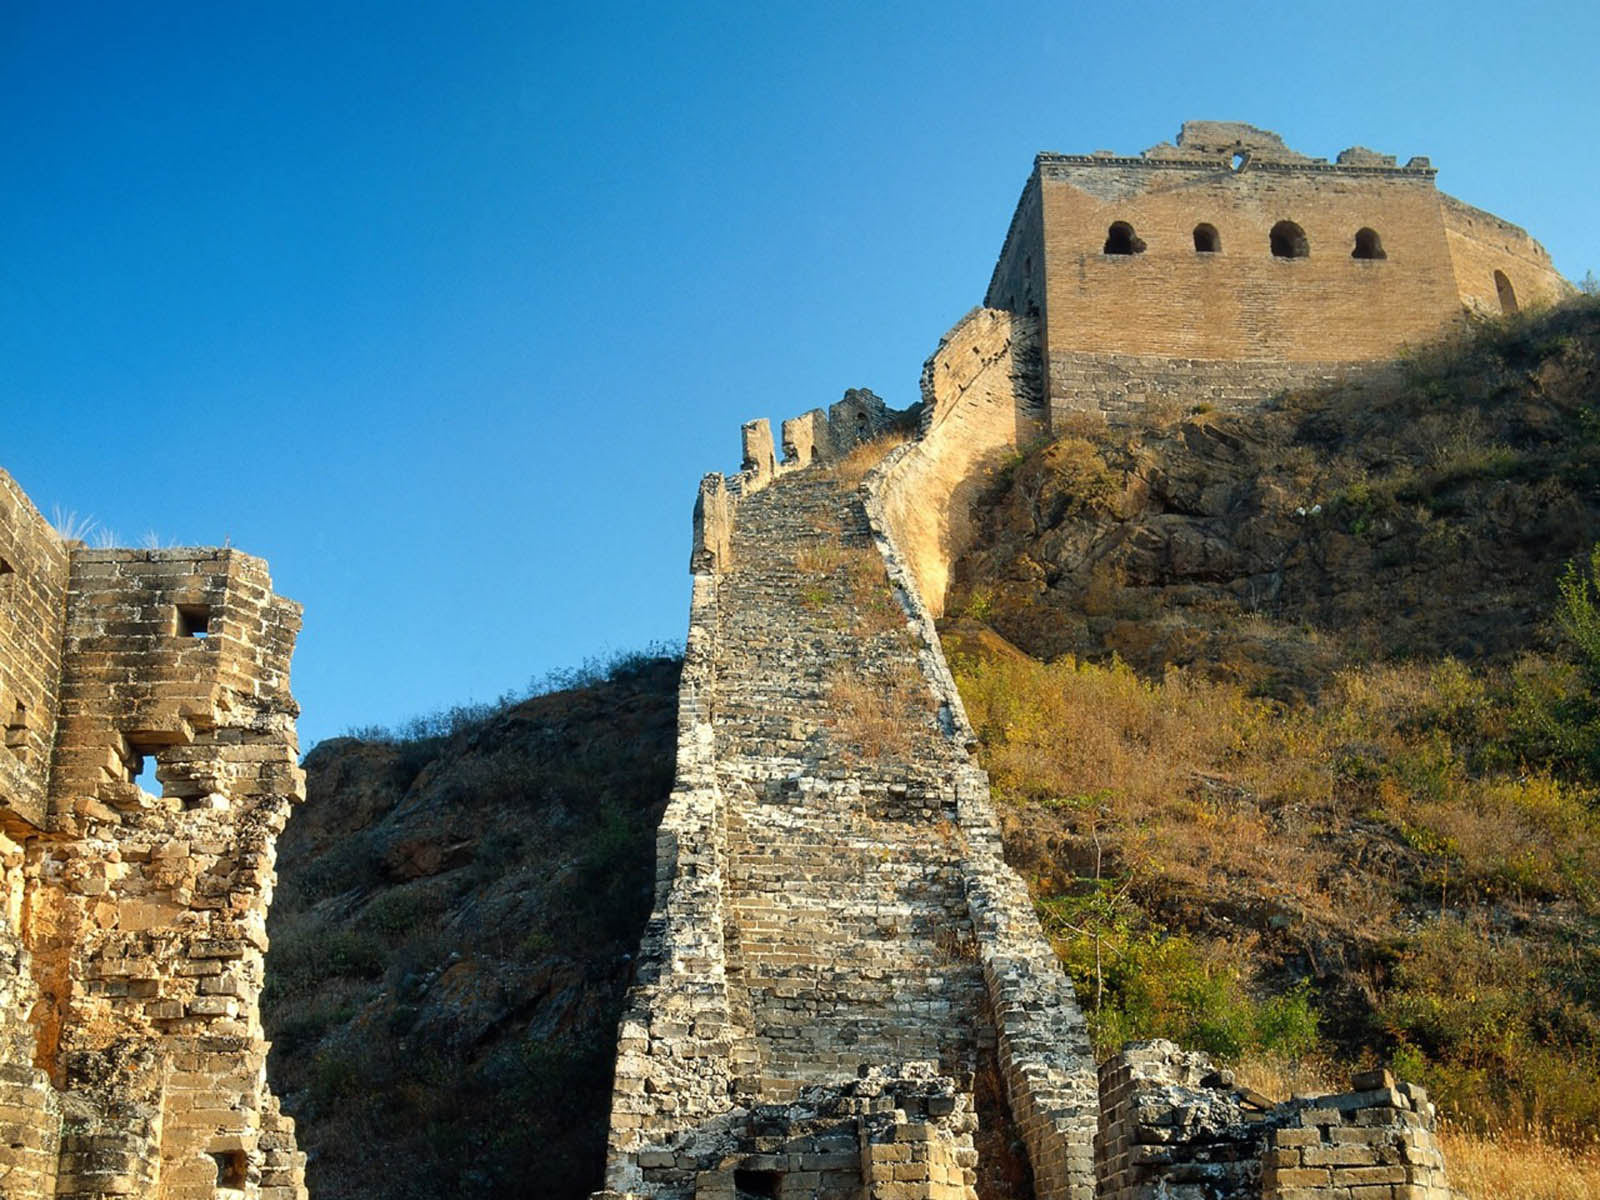 great wall Special photos contact.